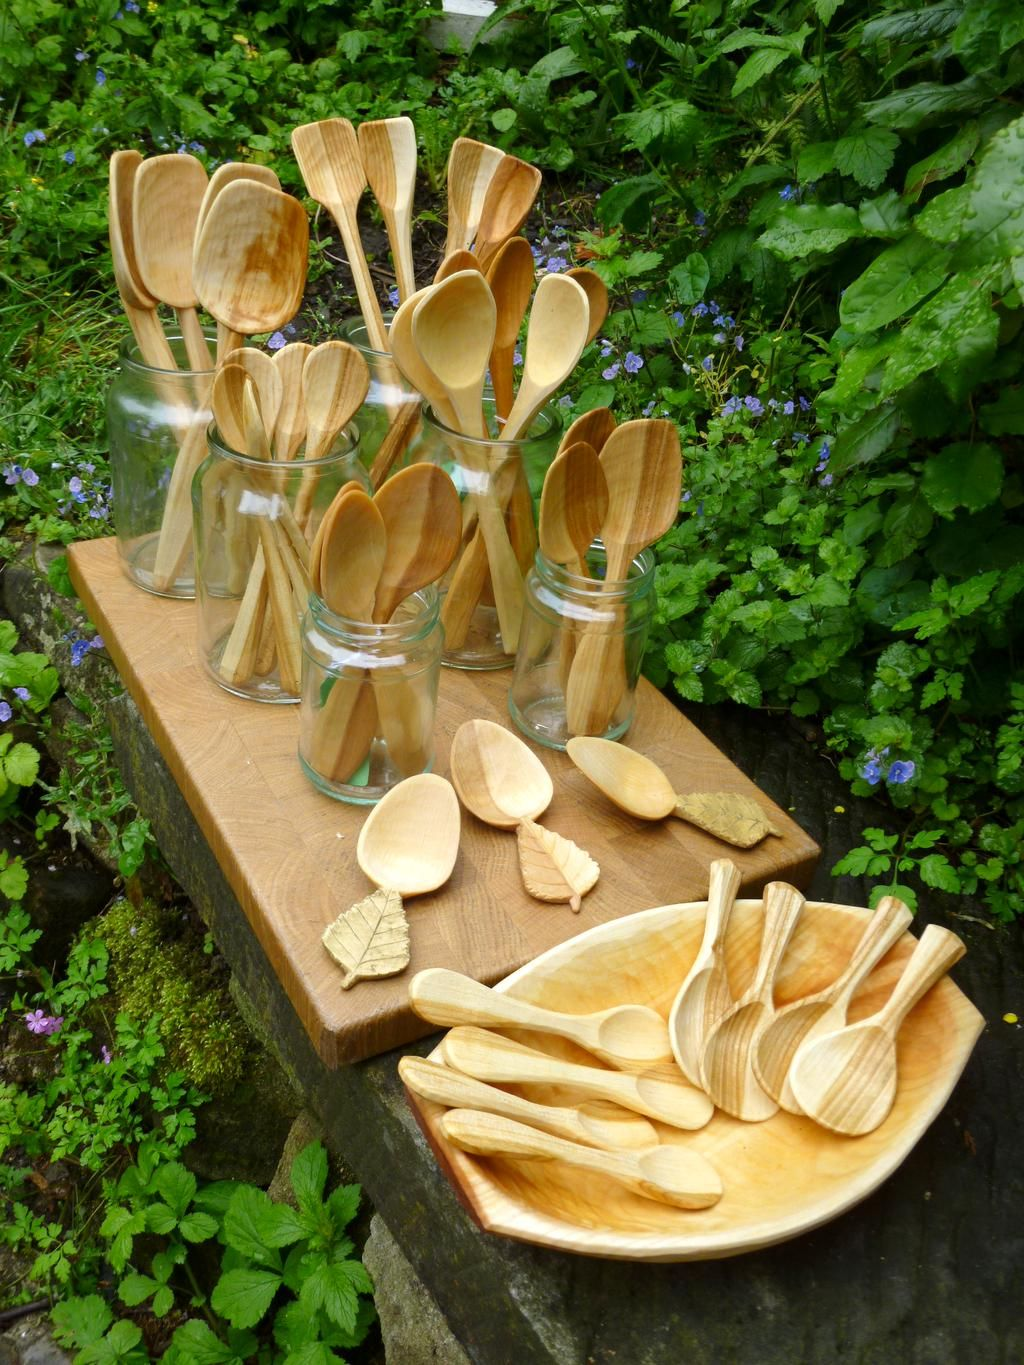 Paul Adamson On Carving Wooden Spoons Wood Carving Carving